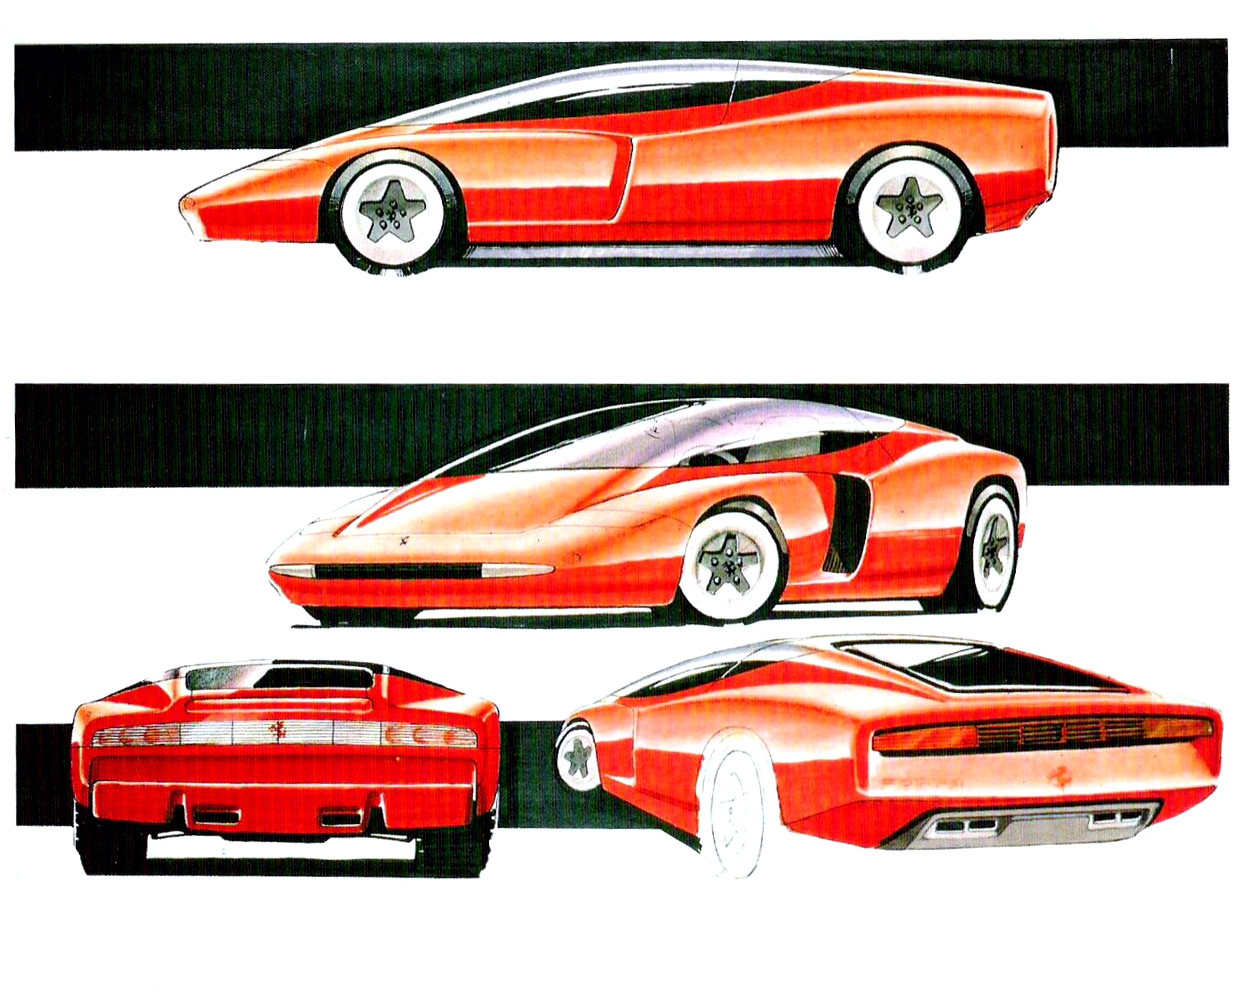 1989_Pininfarina_Ferrari_Mythos_Design-Sketches_02.-3.bp.blogspot.com